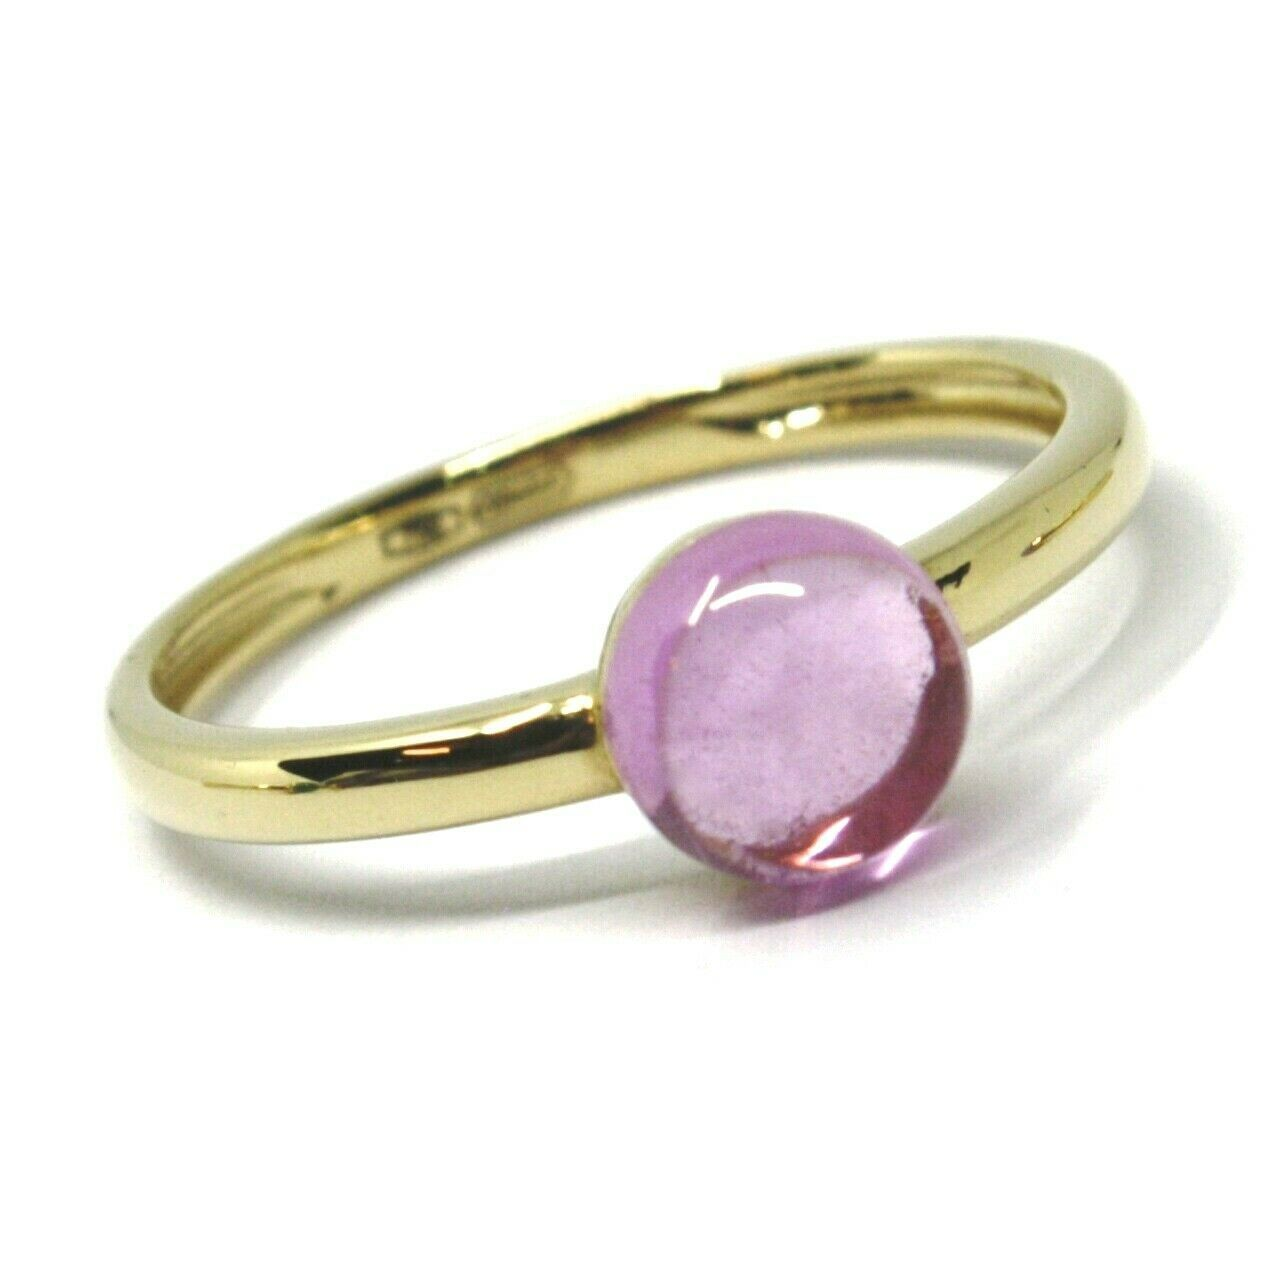 SOLID 18K YELLOW GOLD RING, CABOCHON CENTRAL PINK TOURMALINE, DIAMETER 6mm